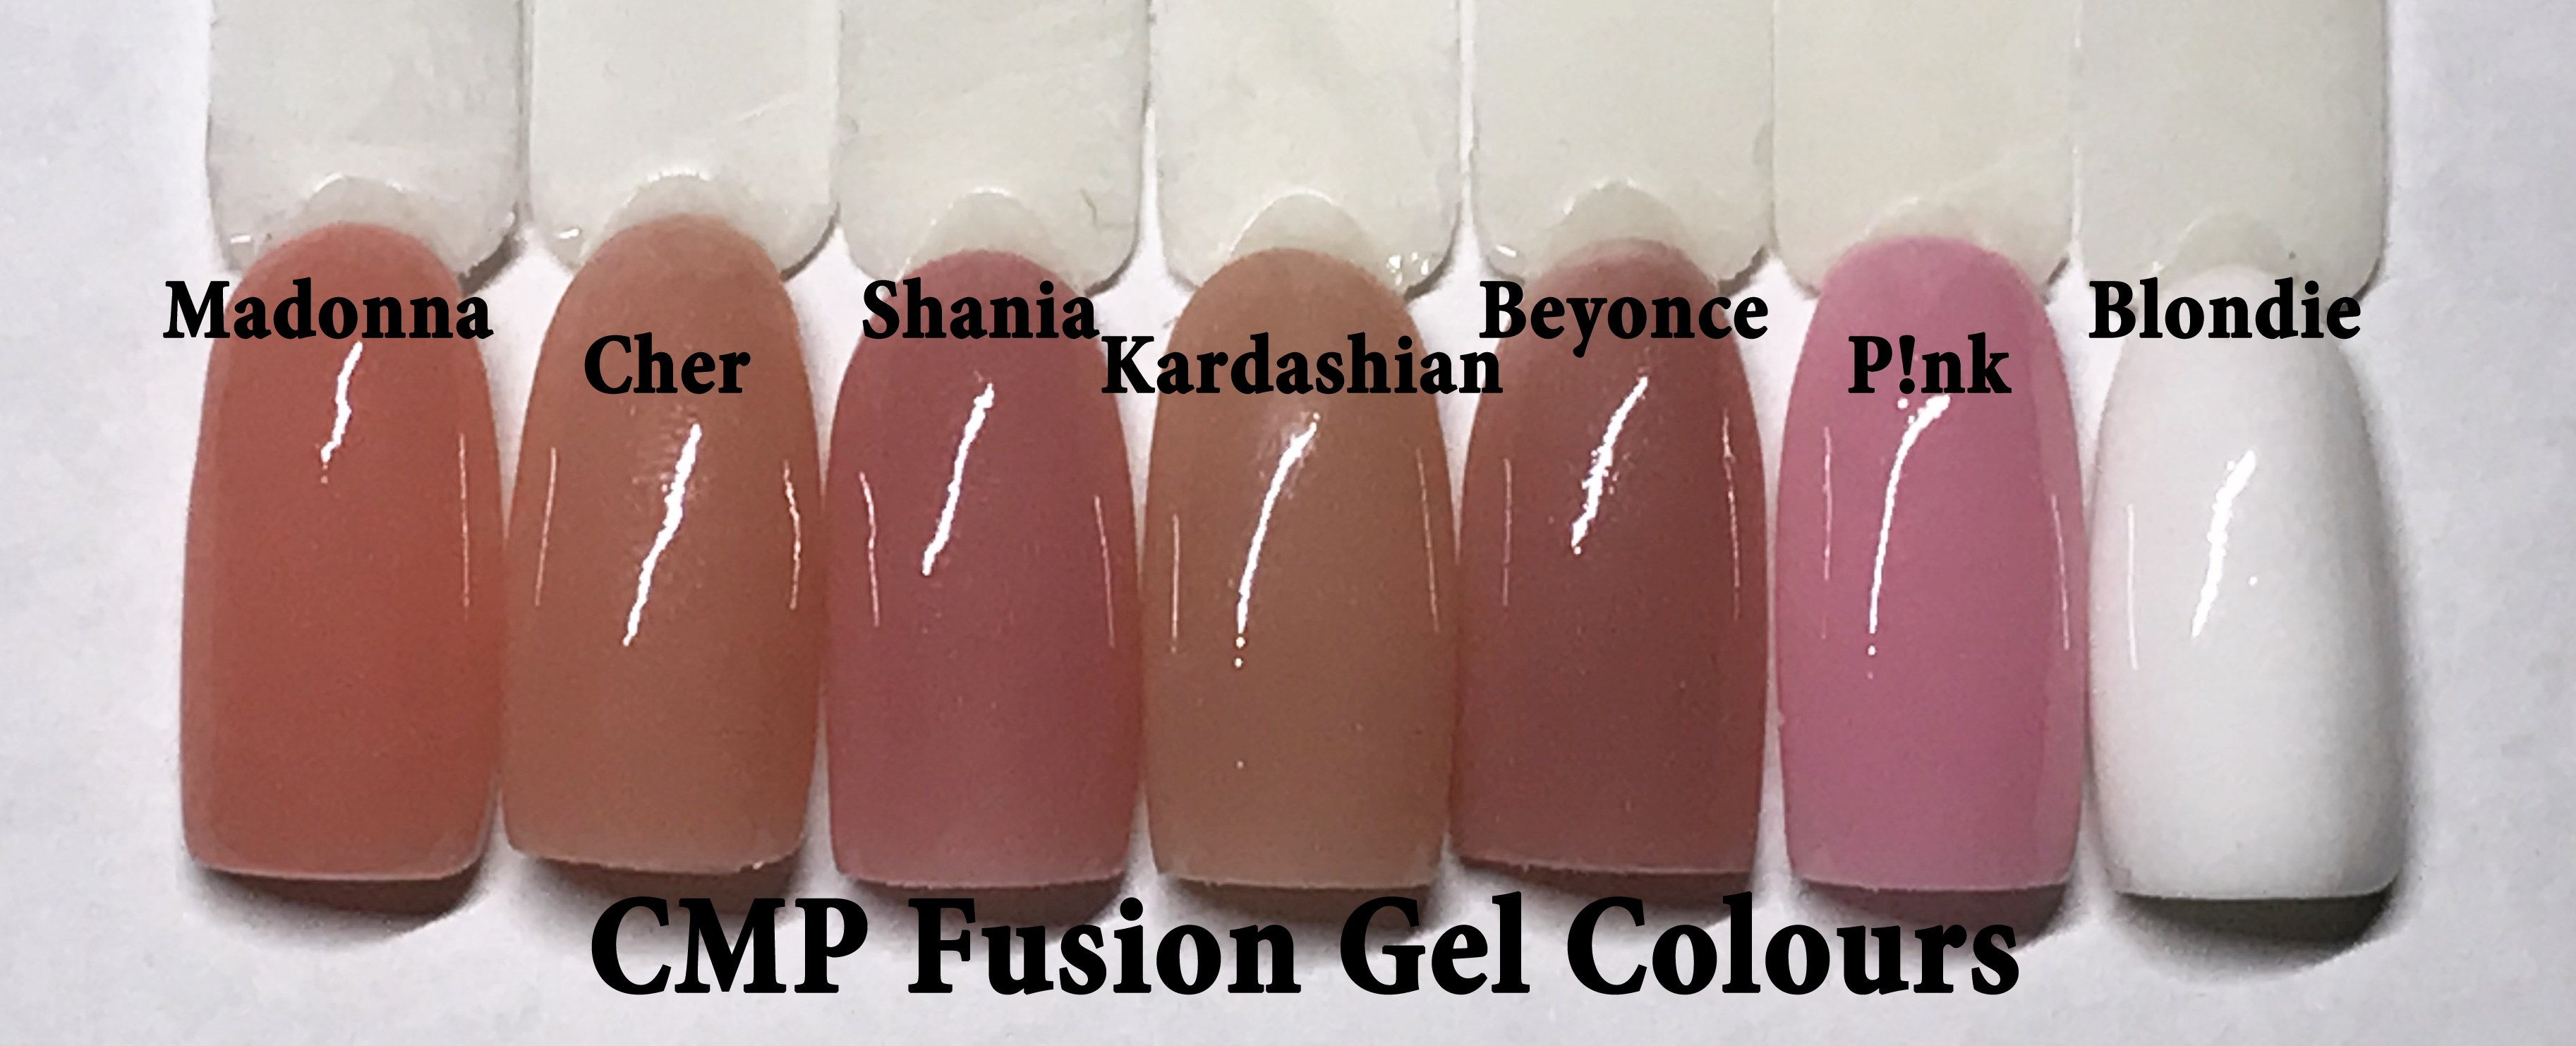 Fusion Gel Colours